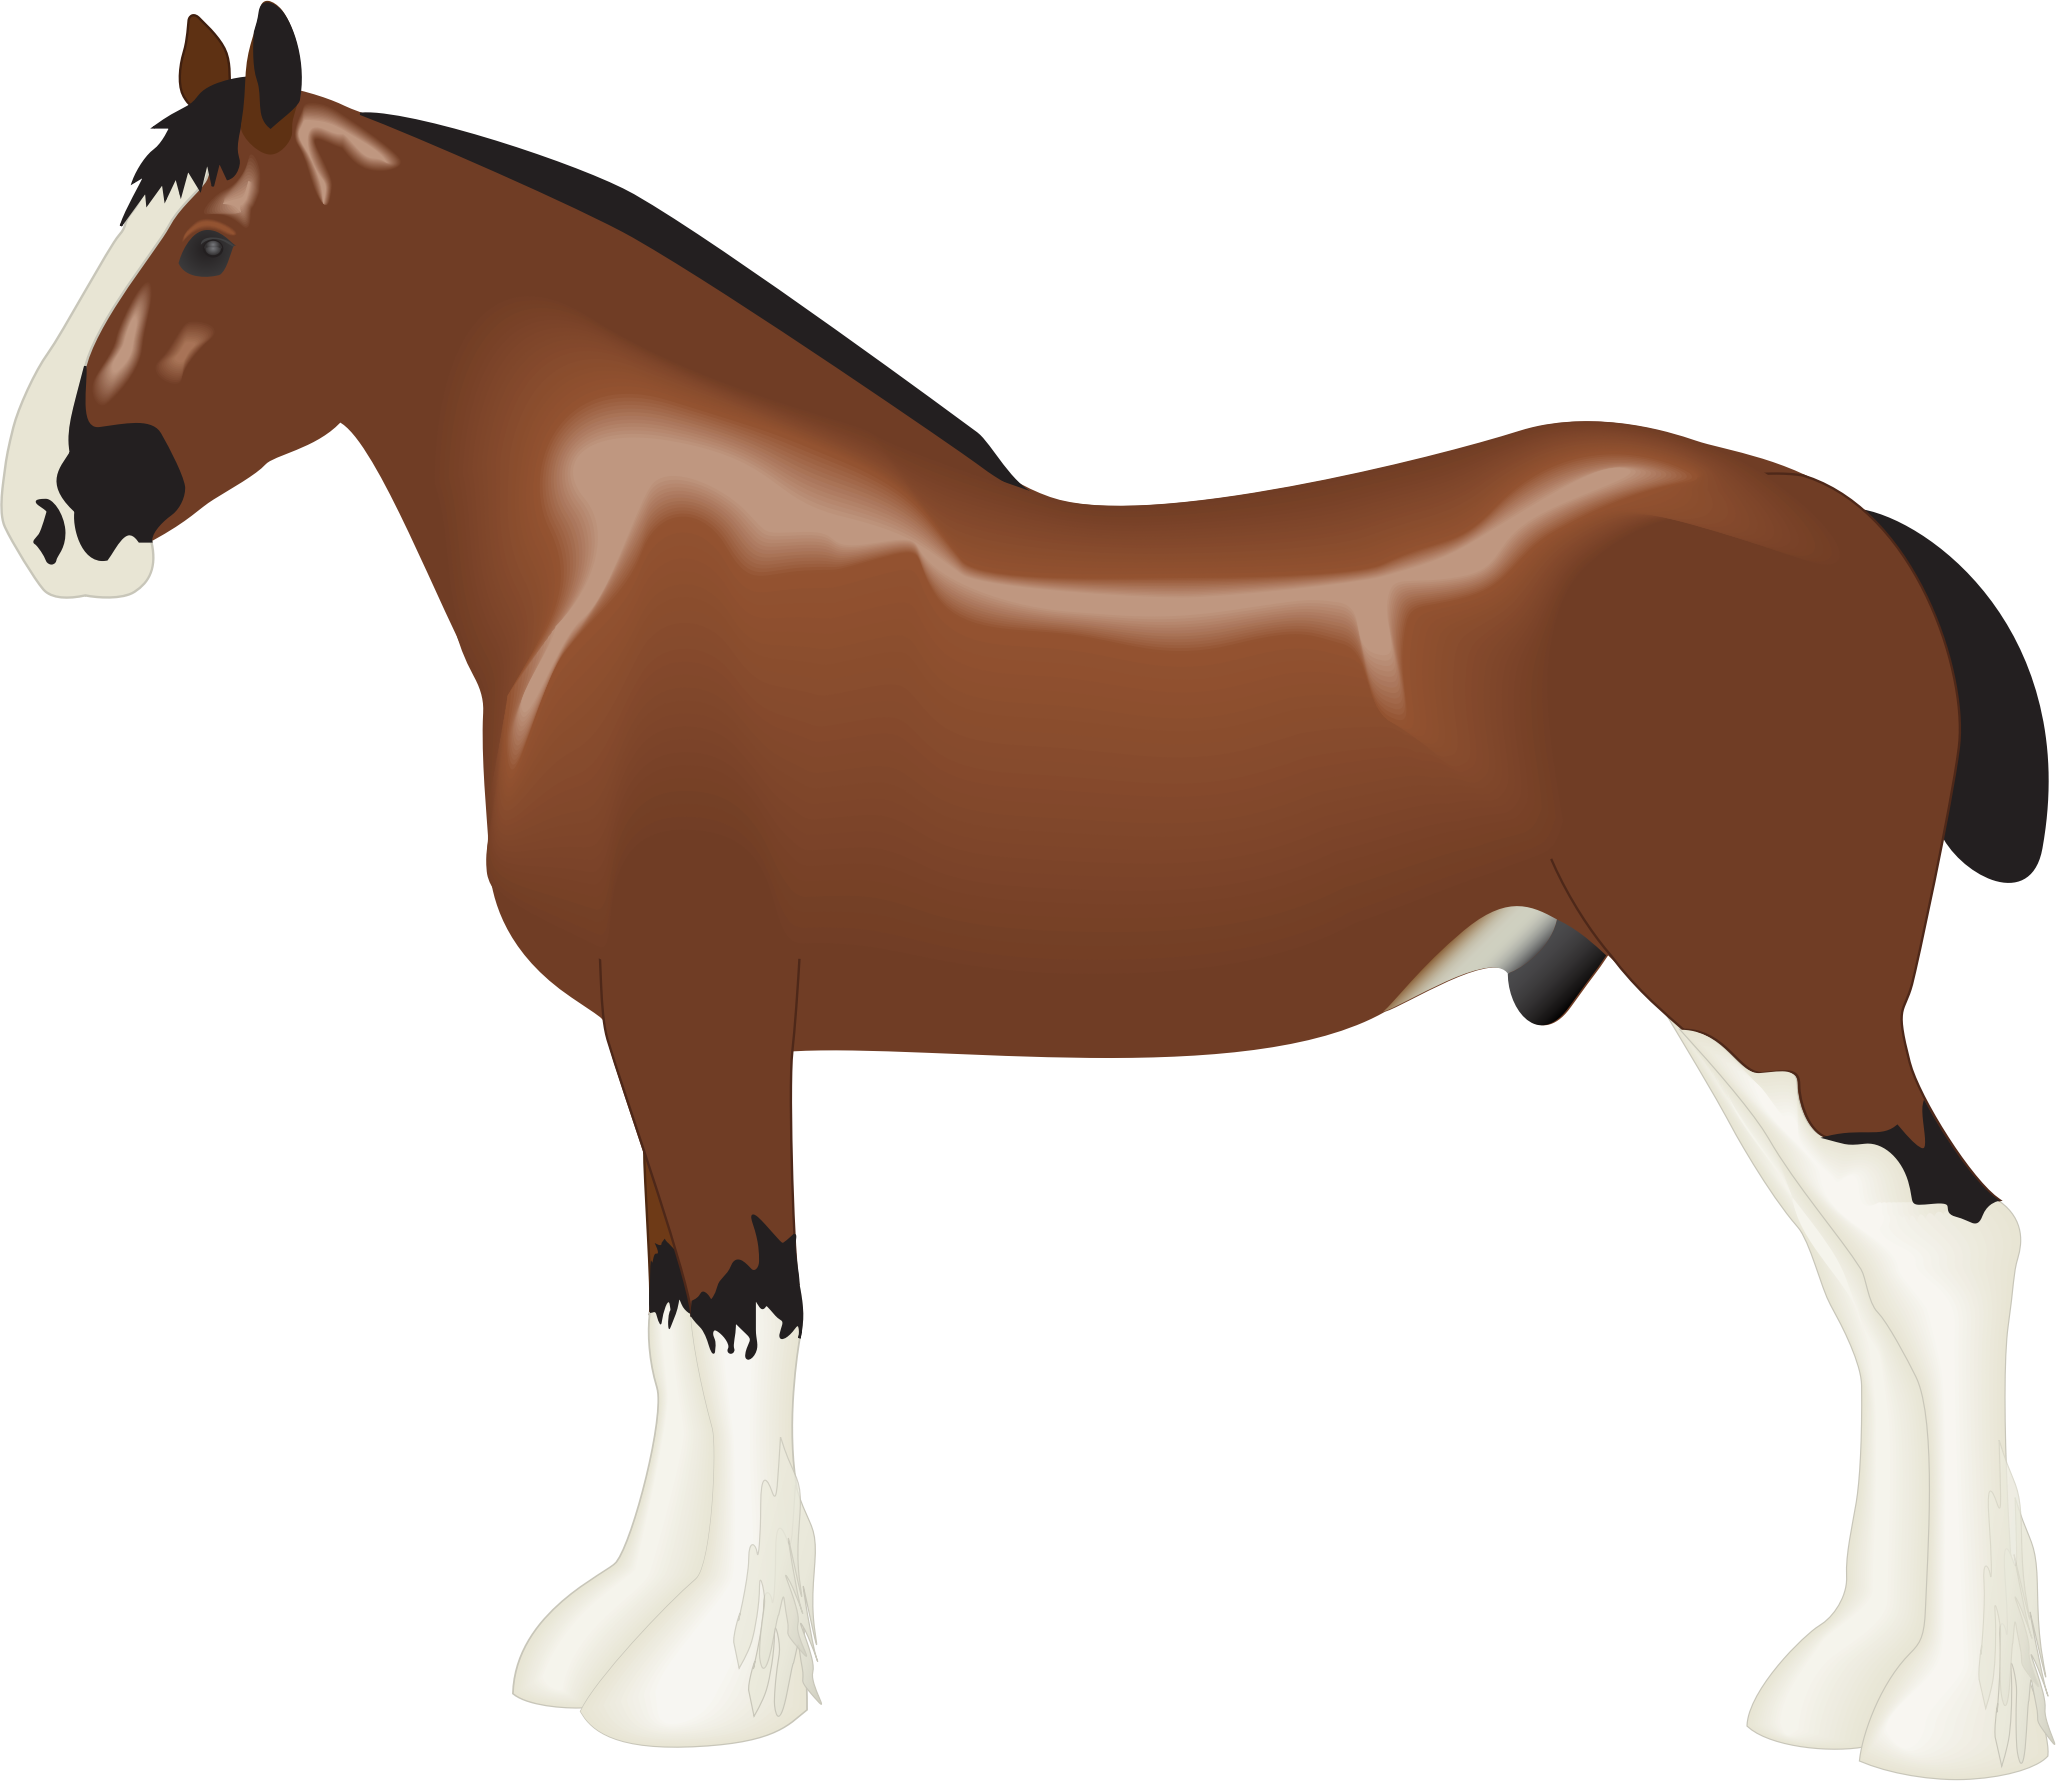 Drawn horse Clydesdale Horse Clipart Horse Clydesdale